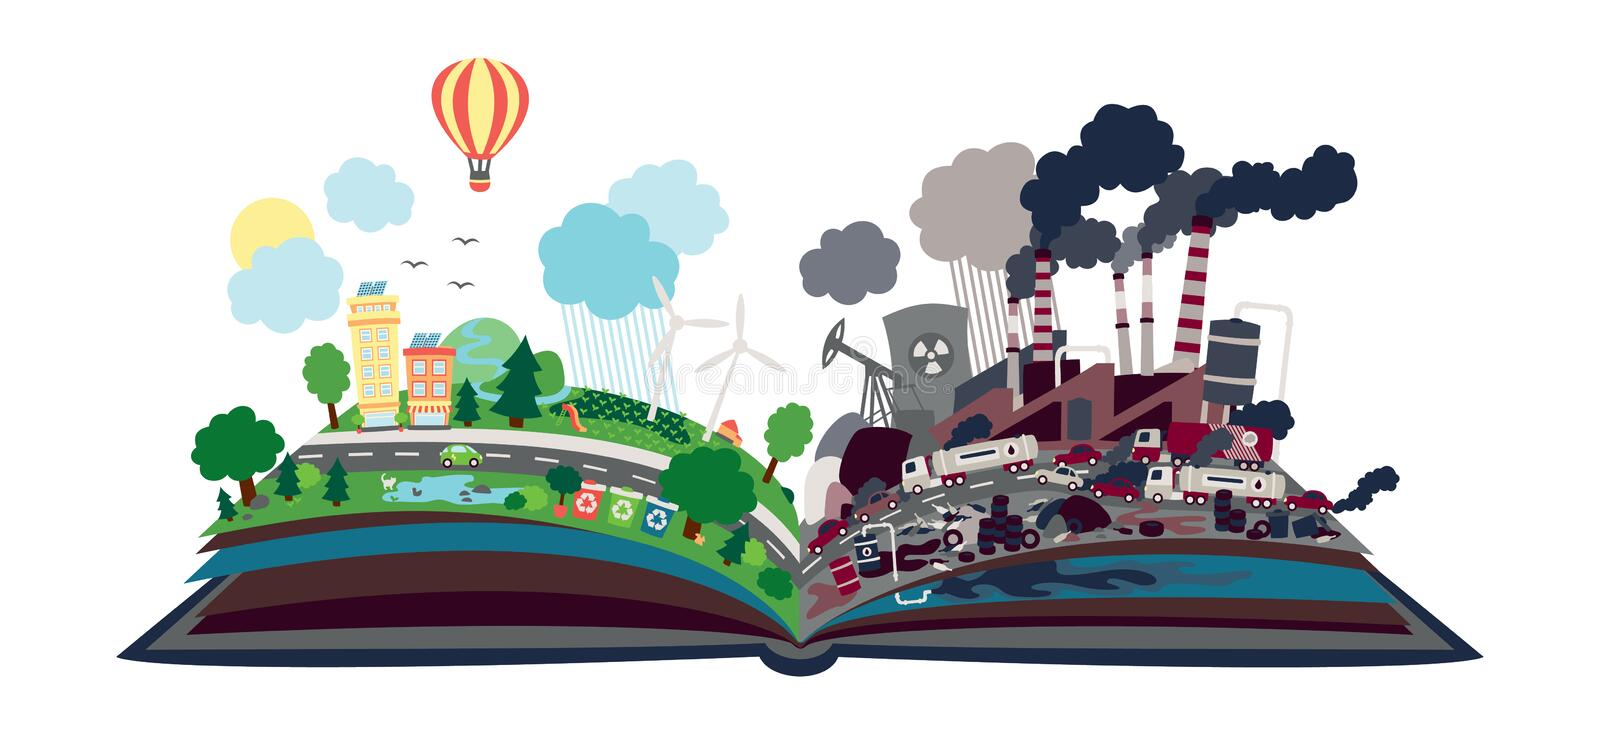 Ecological message in form of open book. Half polluted, half natural with renewable energy sources. Our Future. Ecological message in form of open book. Half royalty free illustration